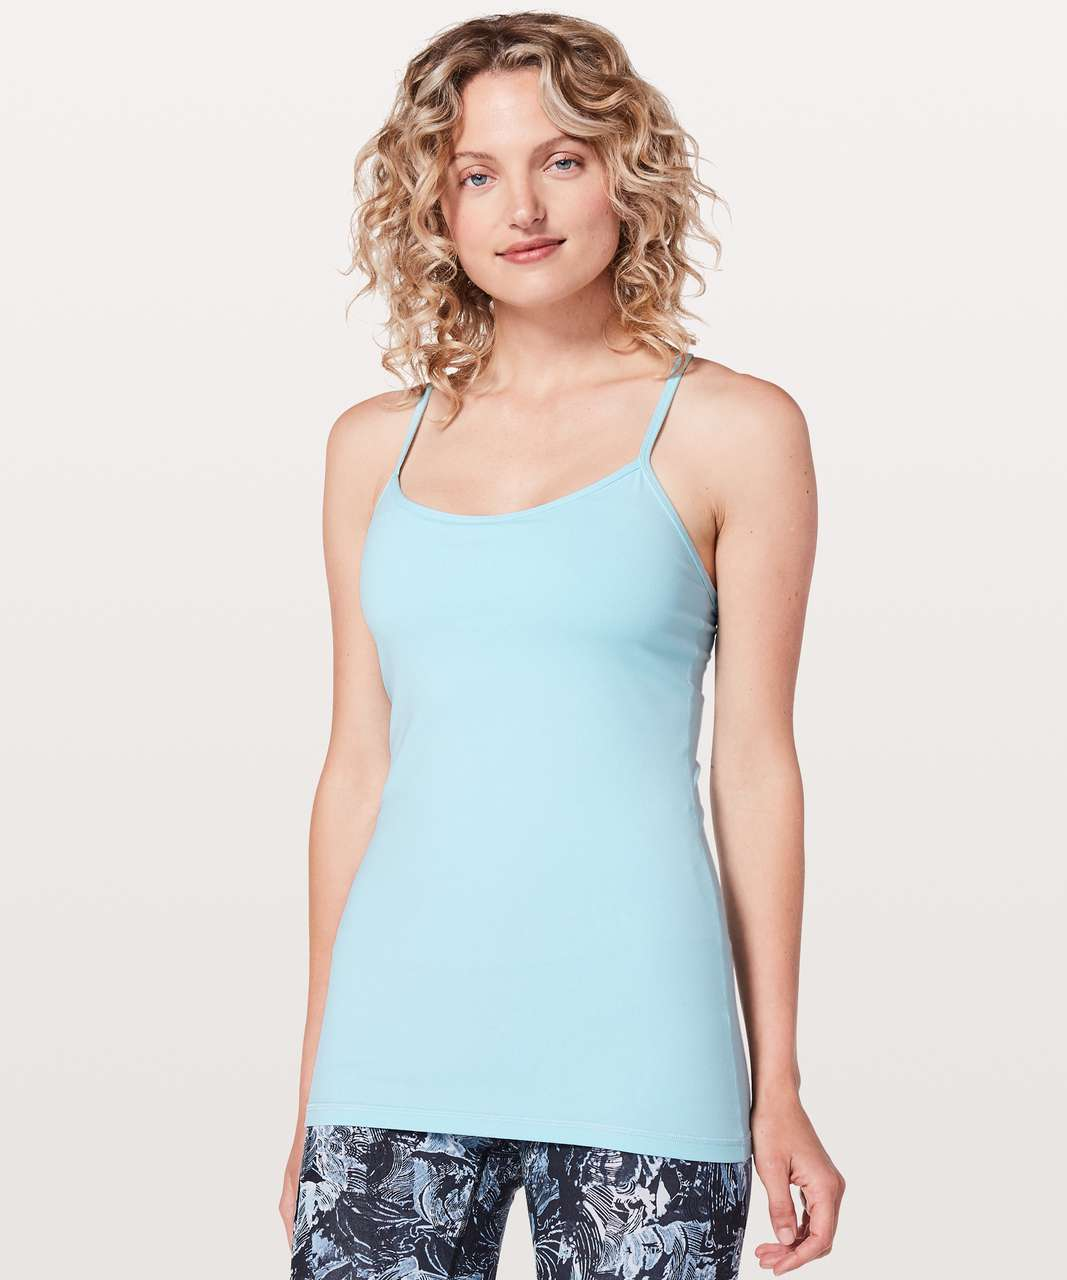 8f471fed7a352 Lululemon Power Y Tank  Luon - Blue Glow - lulu fanatics